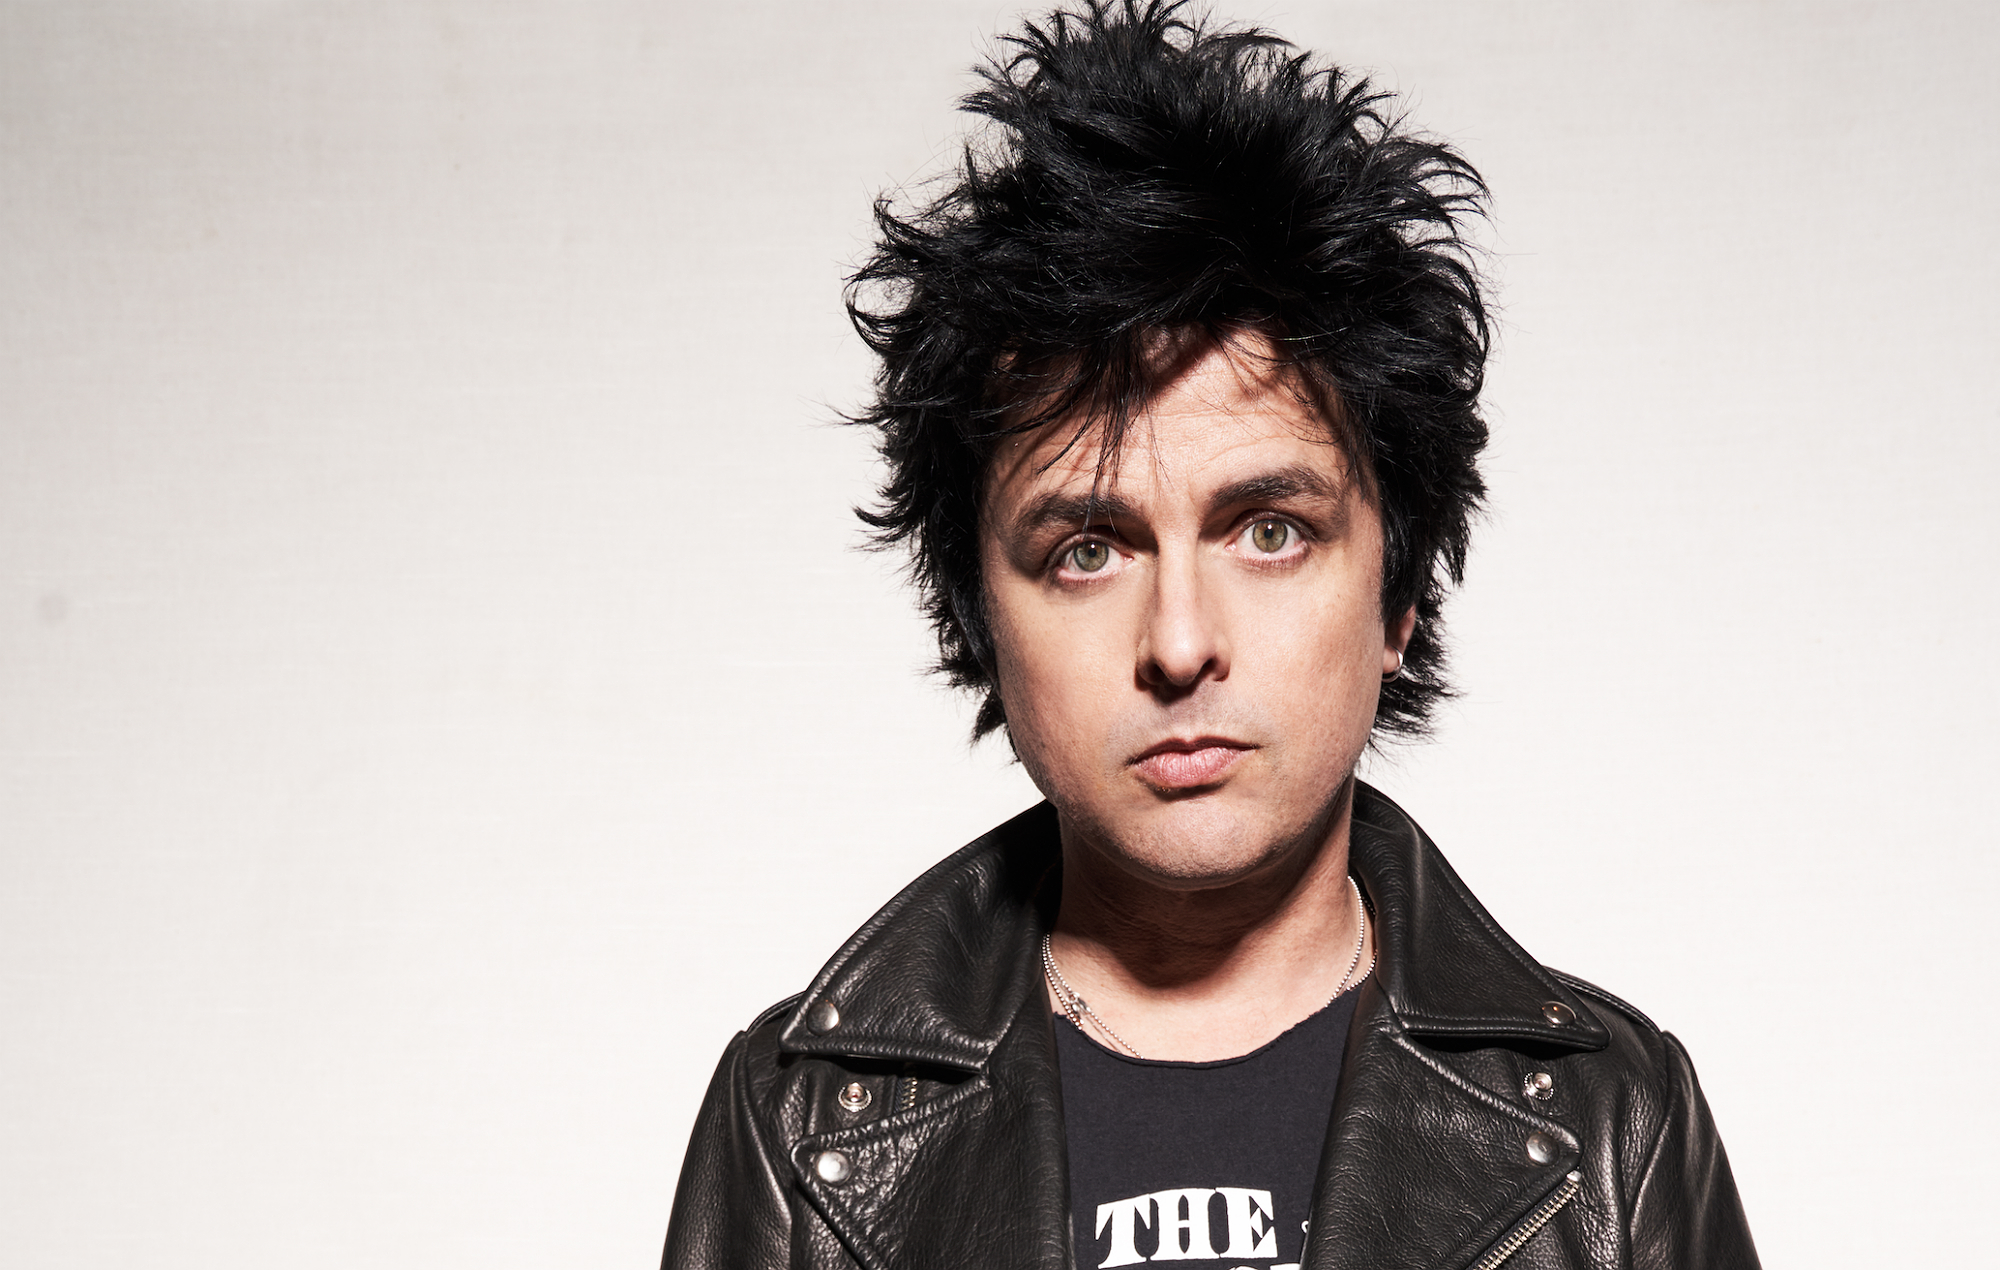 Green Day's Billie Joe Armstrong, shot by Matt Salacuse for NME